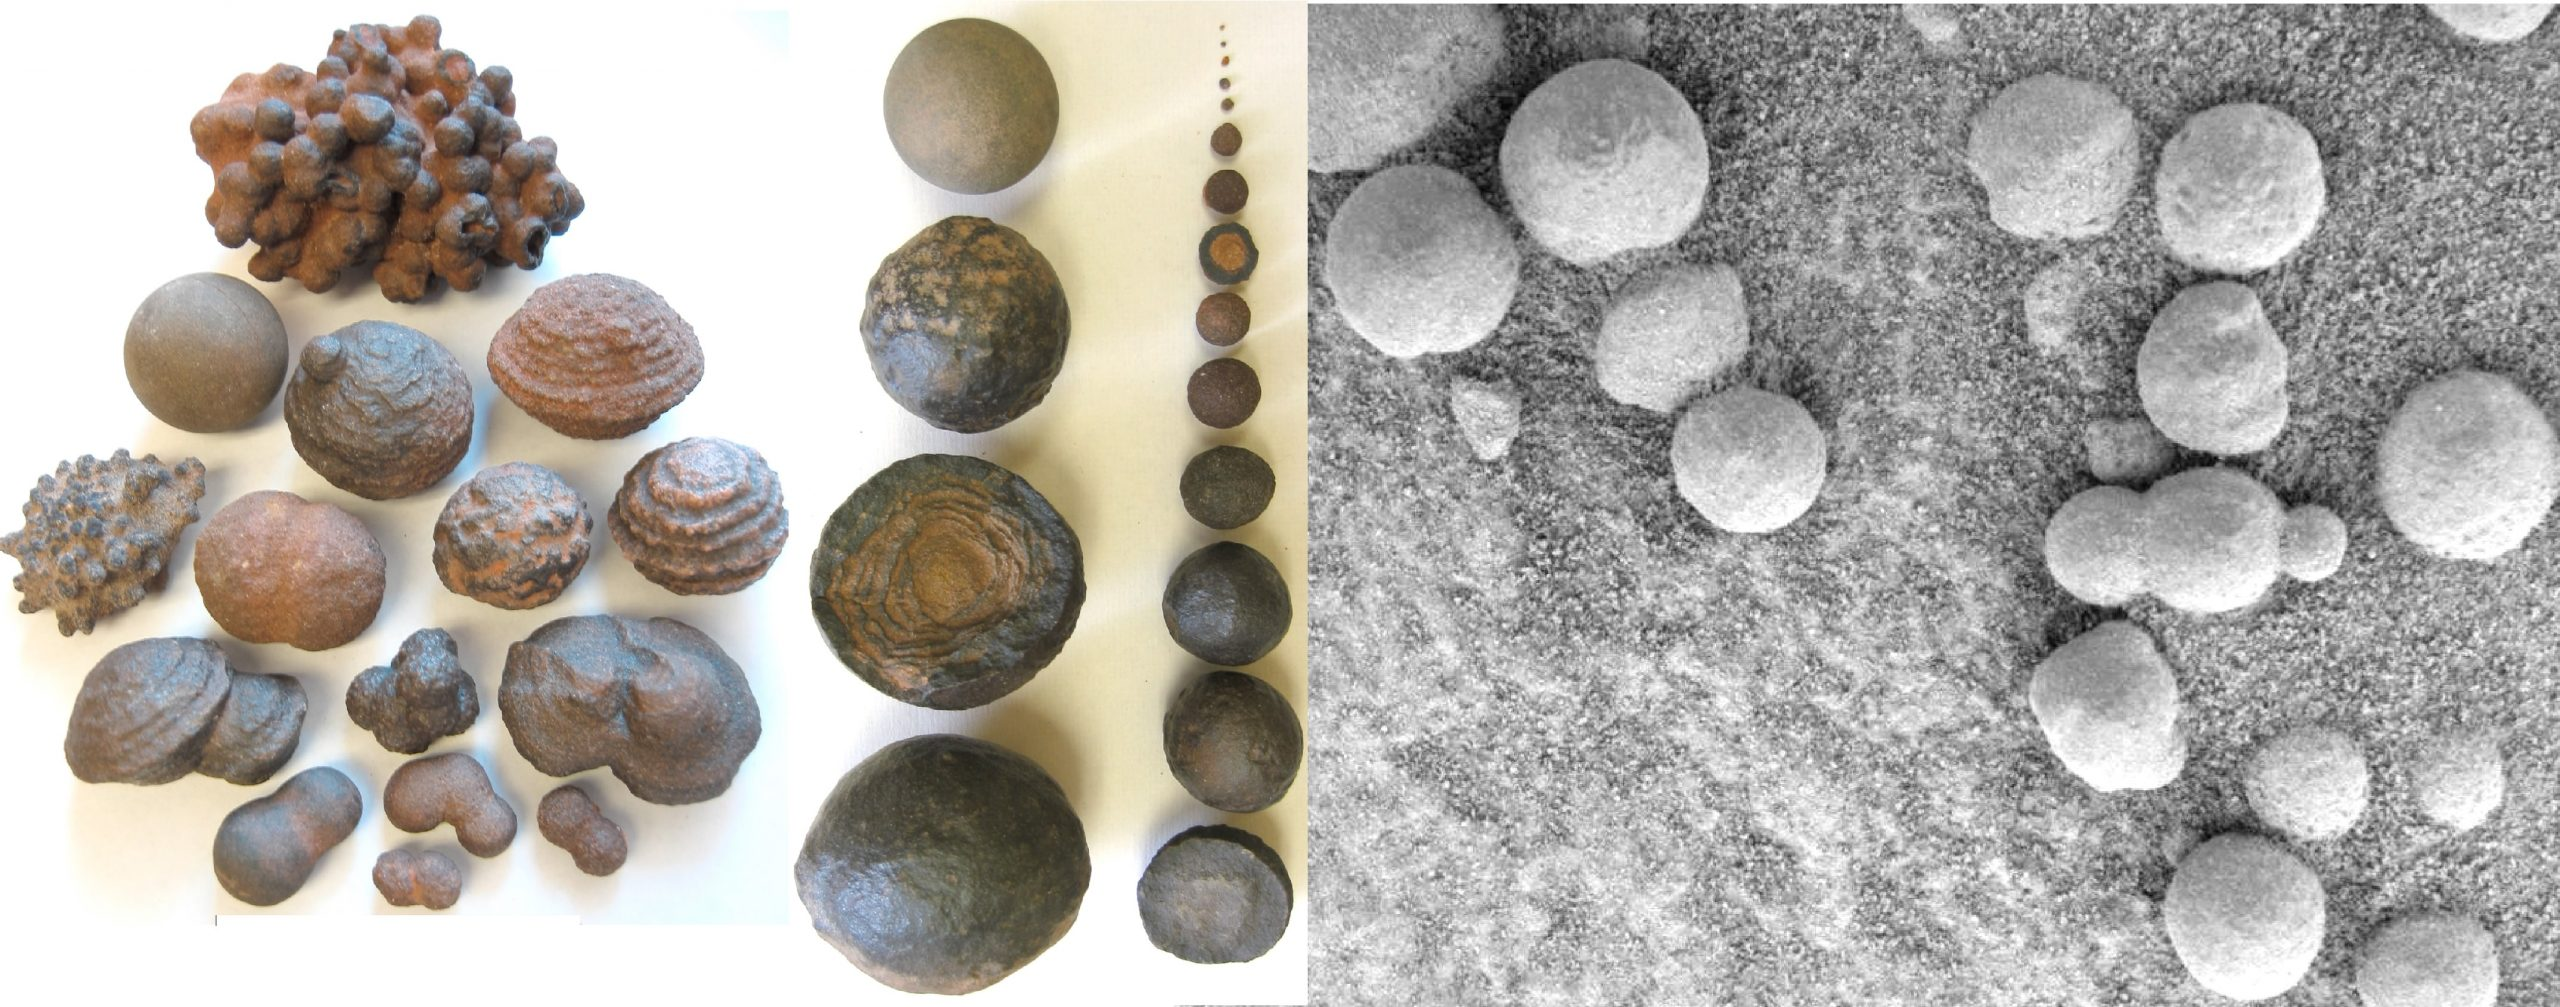 """University of Utah geologists say marble-shaped rocks known as concretions from Utah (left) formed millions of years ago in groundwater-soaked rocks, providing clues to the origin of similar concretions or so-called """"blueberries"""" (right) discovered on Mars by NASA's Opportunity rover. The Utah concretions shown on the left range in diameter from one twenty-fifth of an inch to 2 inches, while the Martian versions on the right all measure less than one-fifth of an inch in diameter. (Scale of photos is different.)"""